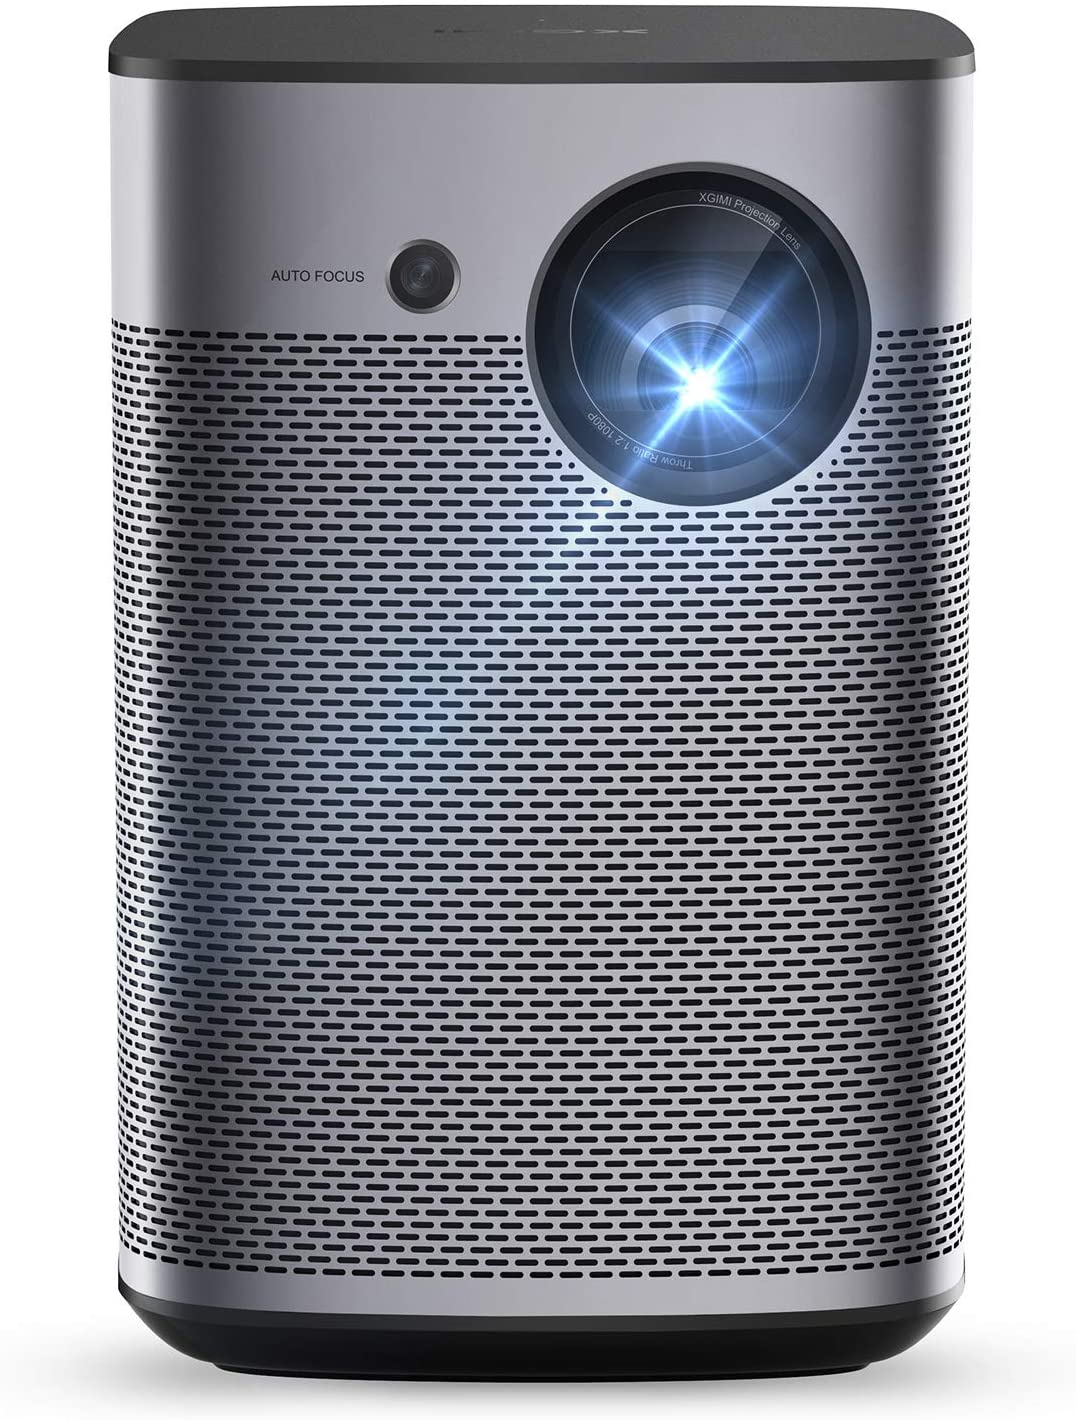 Xgimi Halo Portable Projector, True 1080P Projector 4K Support, Smart Mini Projector with Android TV 9.0 uk reviews